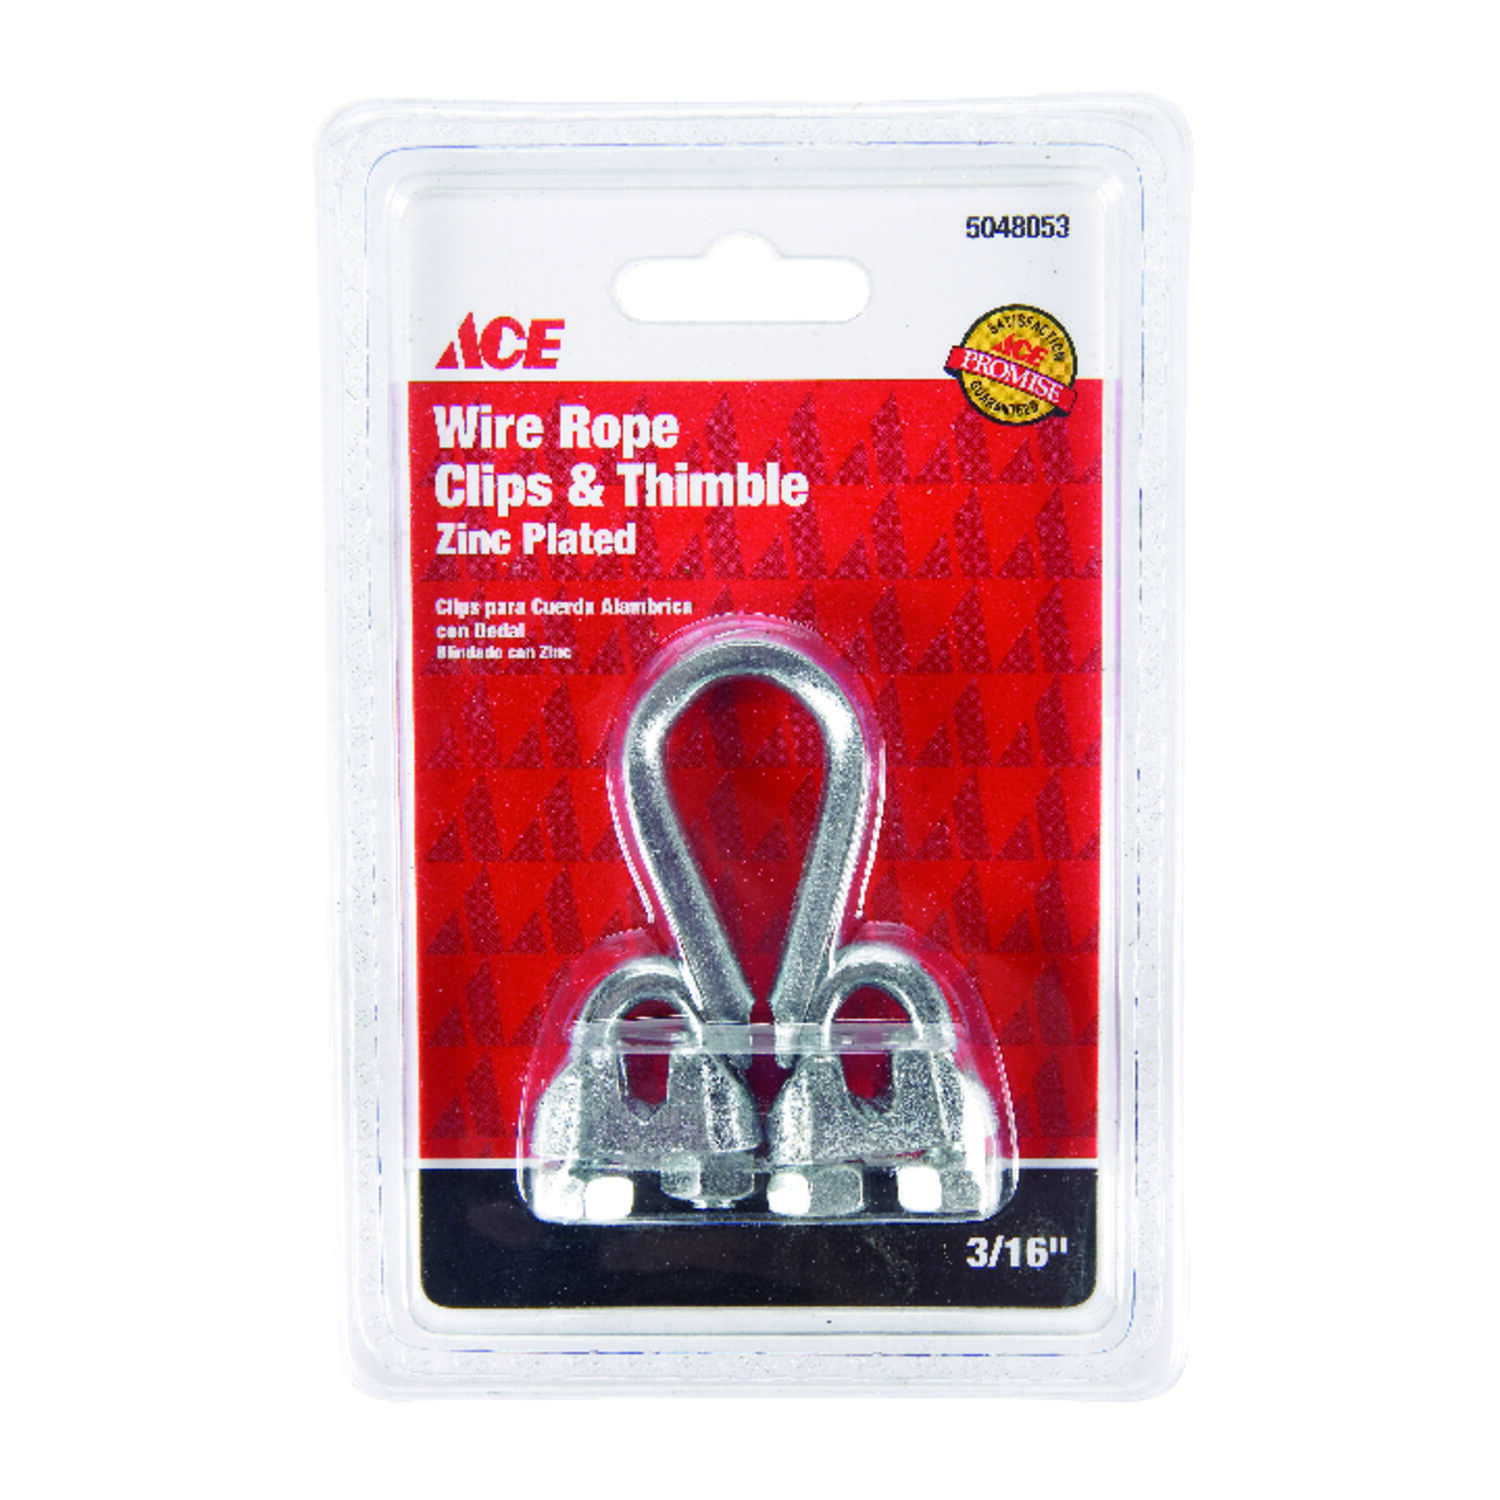 Ace  Galvanized  Wire Rope Clips and Thimble  Steel  1 pk